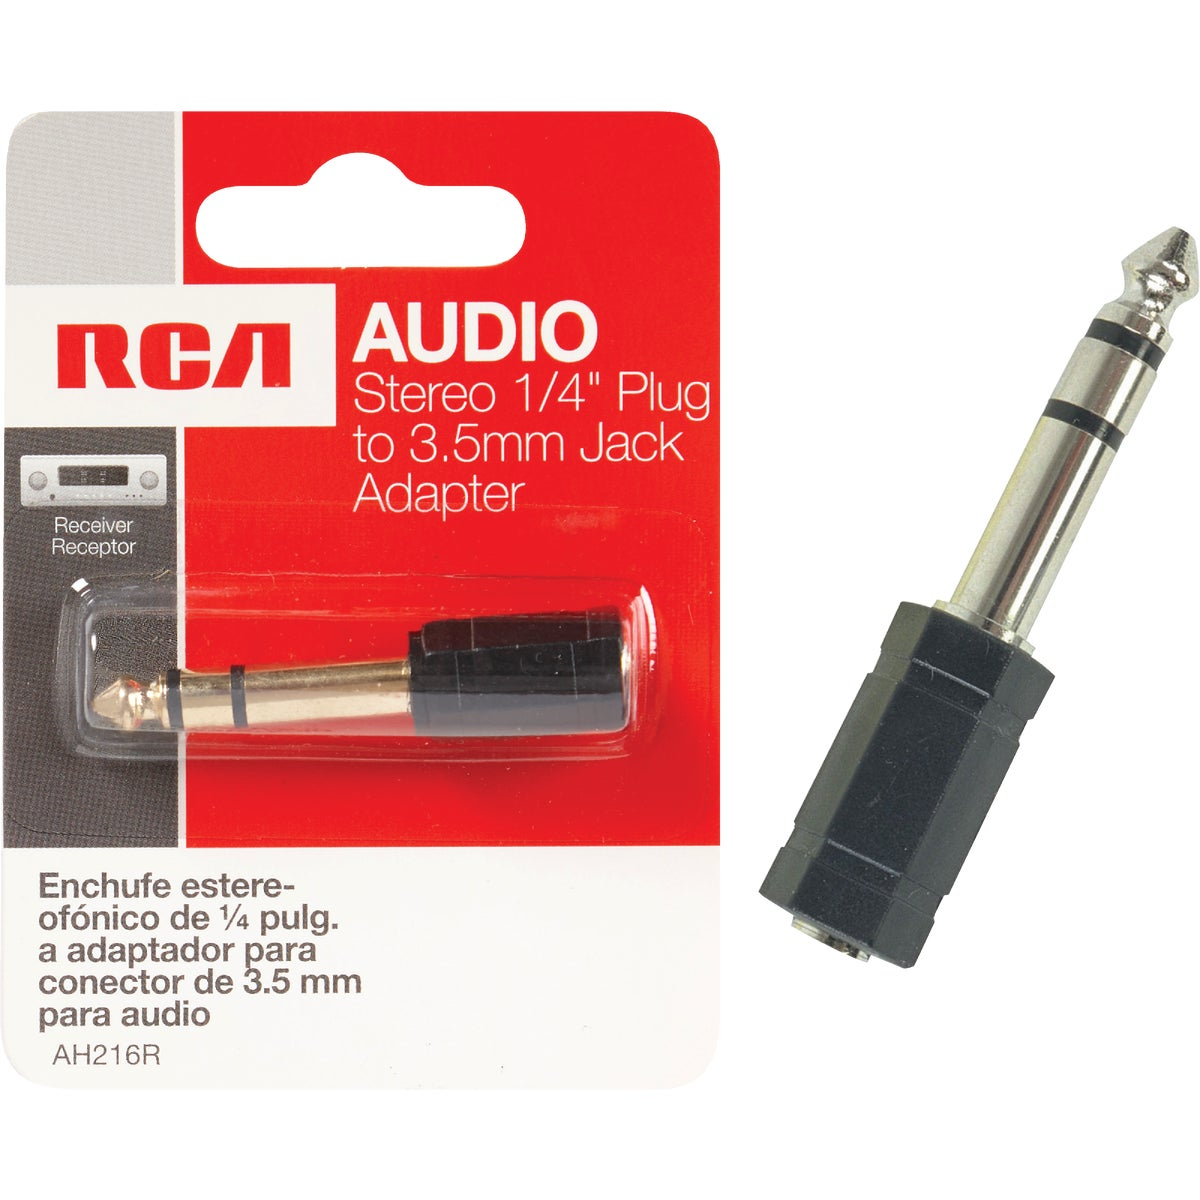 3.5MM STEREO ADAPTER - AH216R by Audiovox Accessories